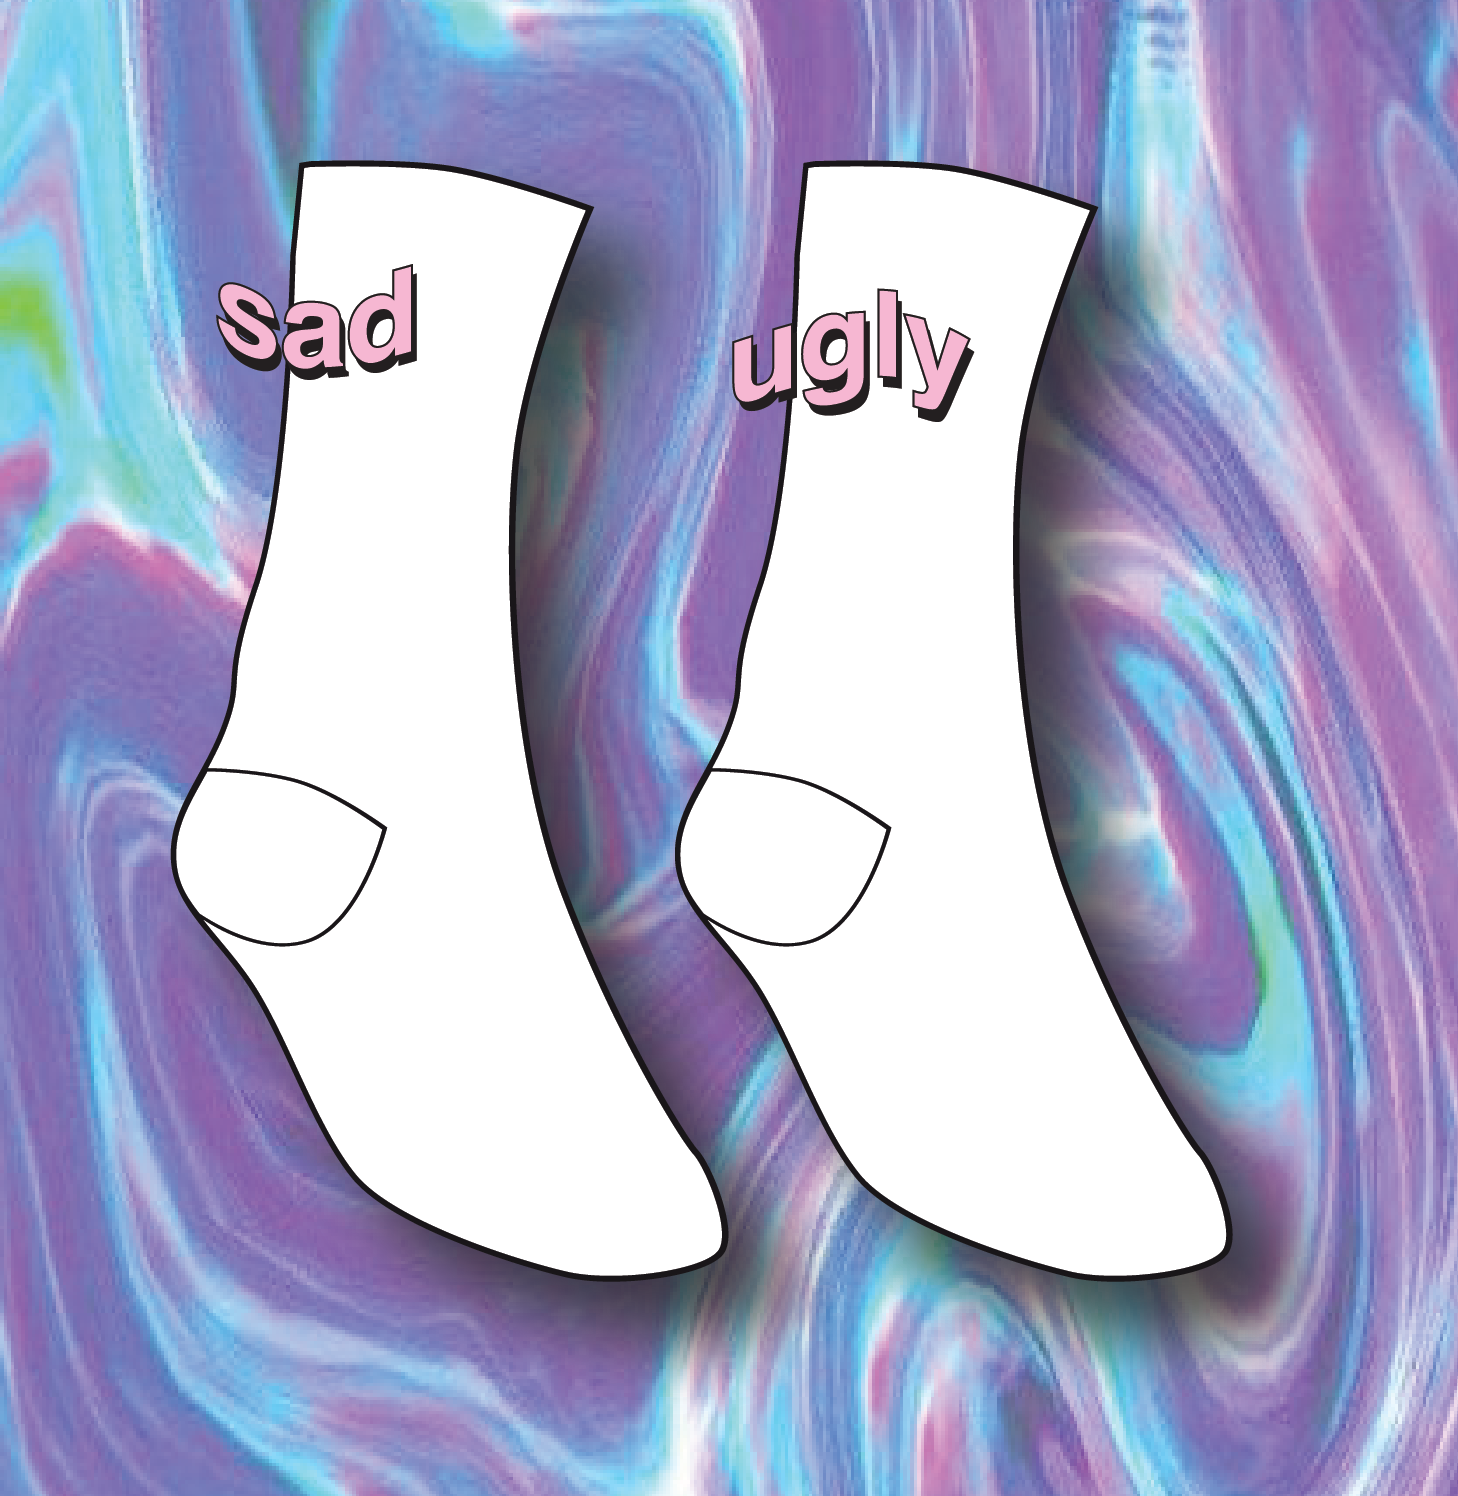 Sad and Ugly Socks